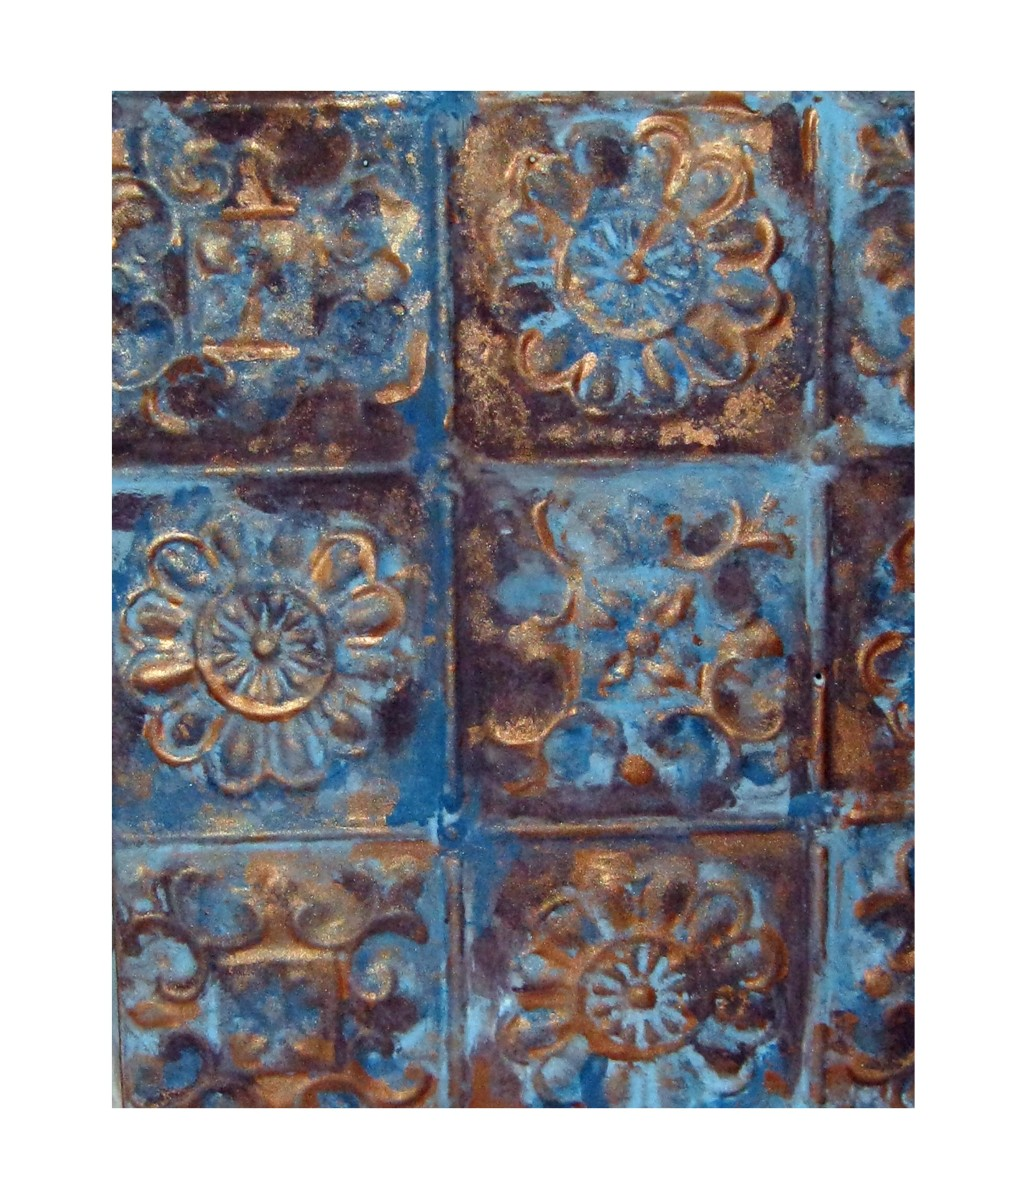 wall hanging with antique ceiling tin